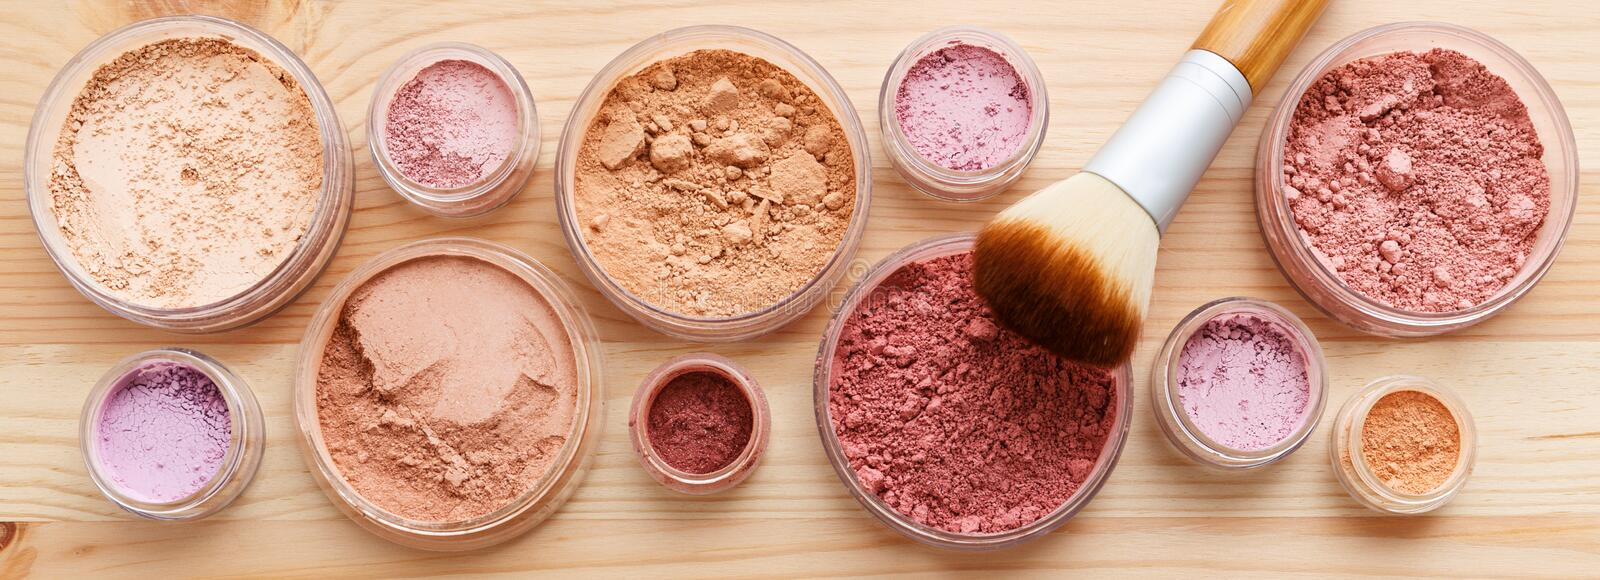 Makeup powder. Products with foundation blush and brush